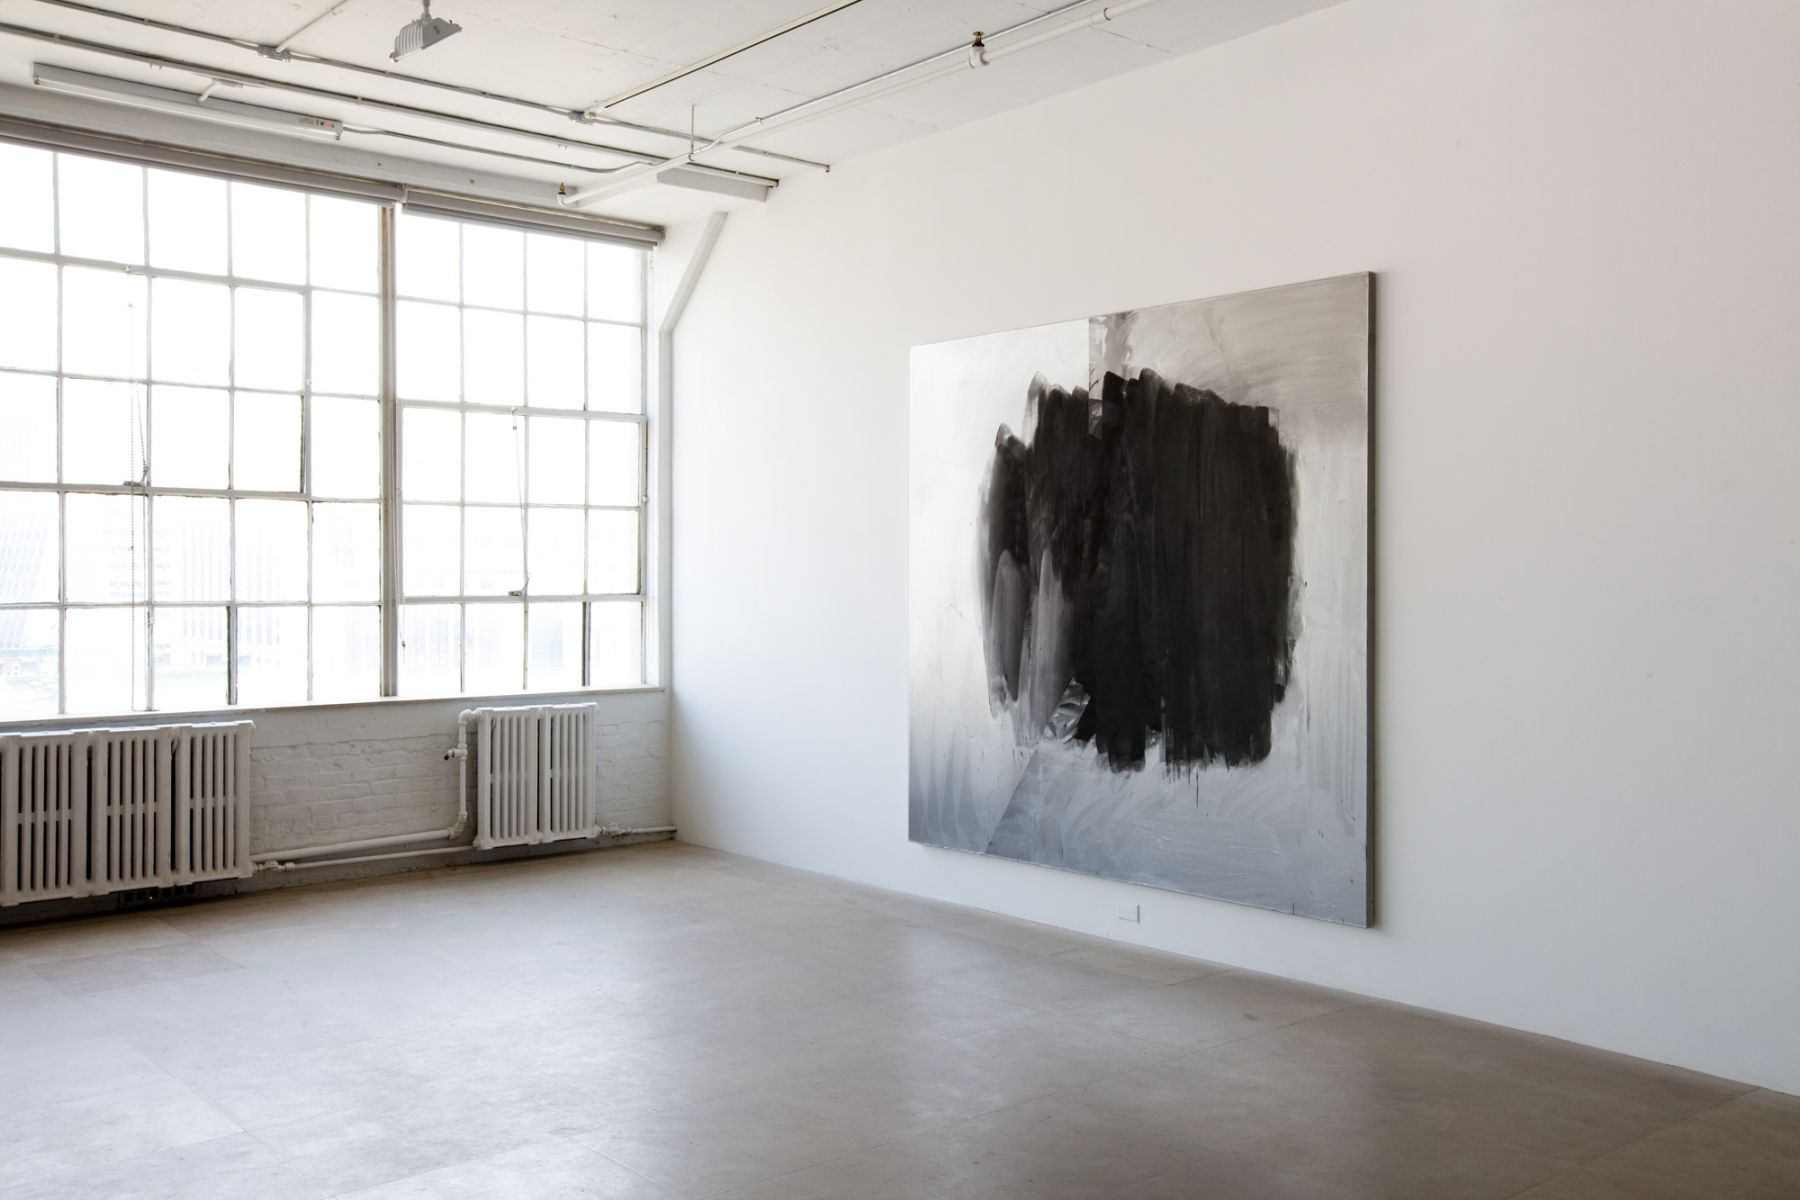 Jacqueline Humphries, Installation view, Greene Naftali, New York, 2009